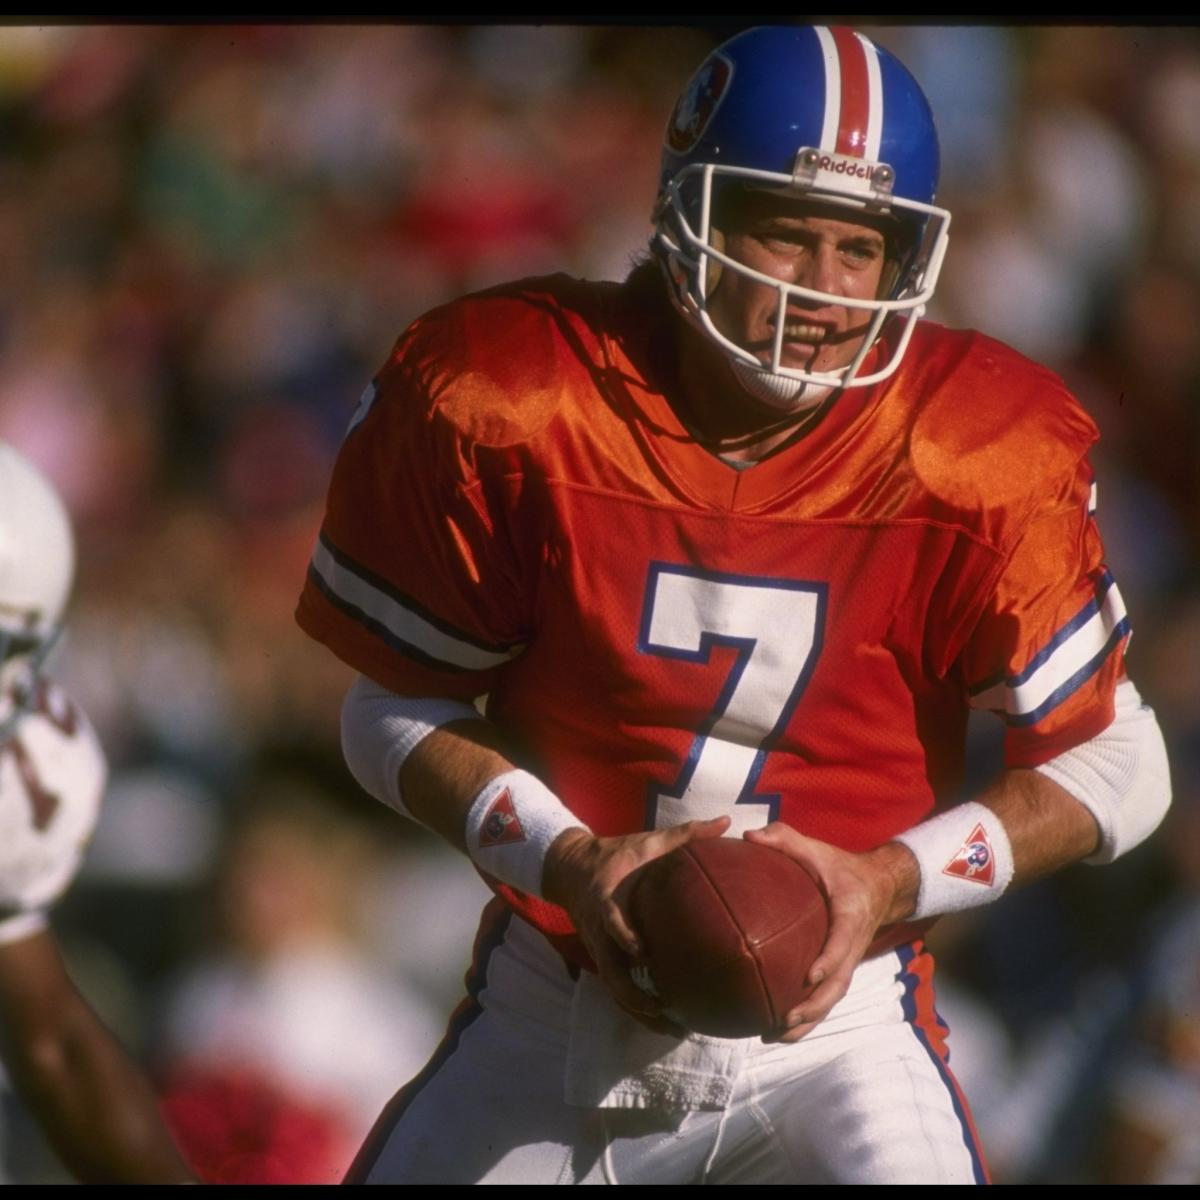 Denver To Hawaii: Today's Best Quarterbacks And Their Throwback Comparisons